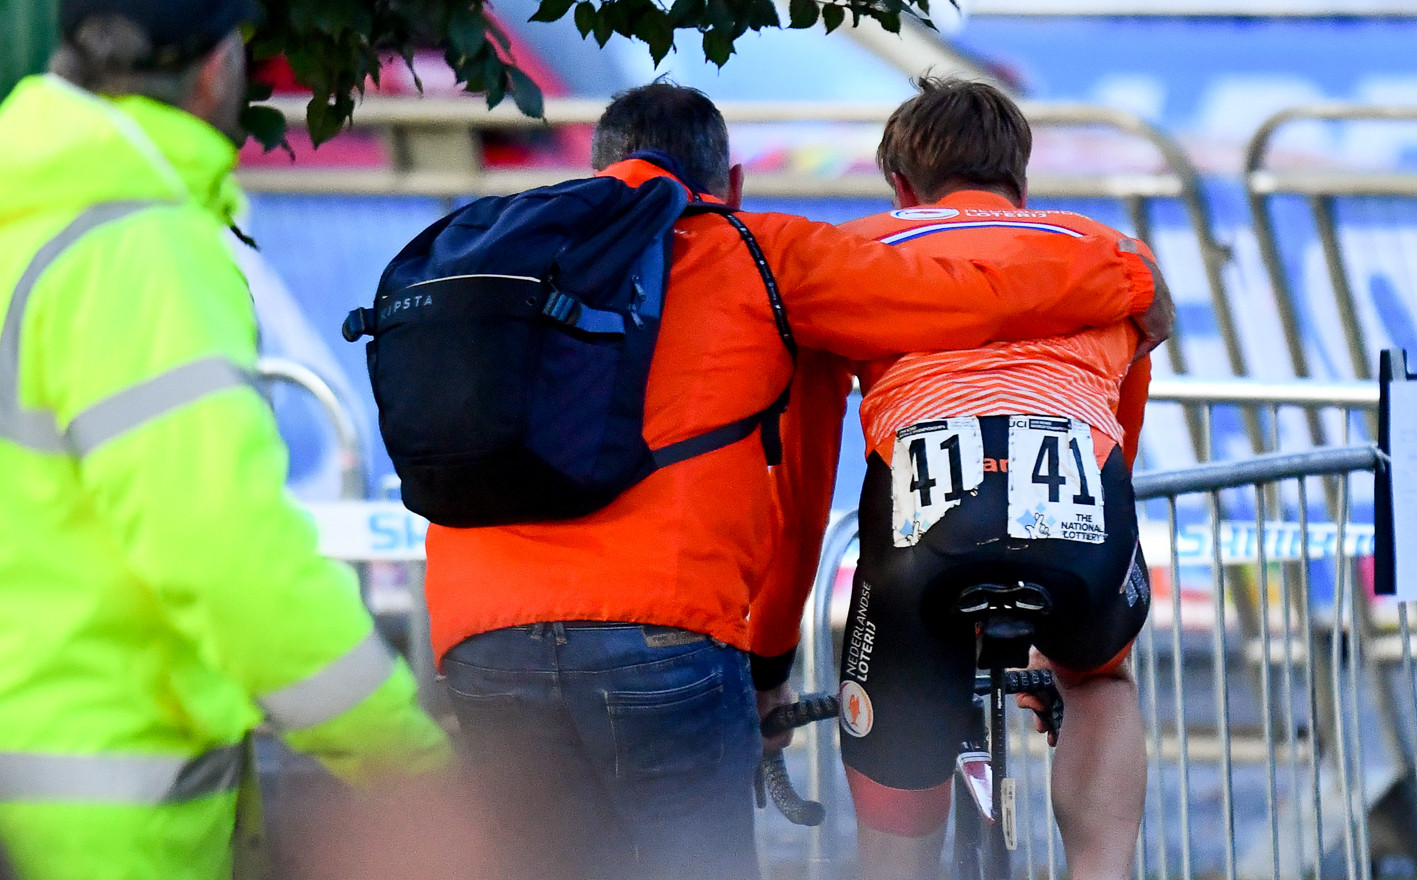 Nils Eeekhoff (NL) leaves the podiumarea after his disqualification at the 2019 Road World Championships.